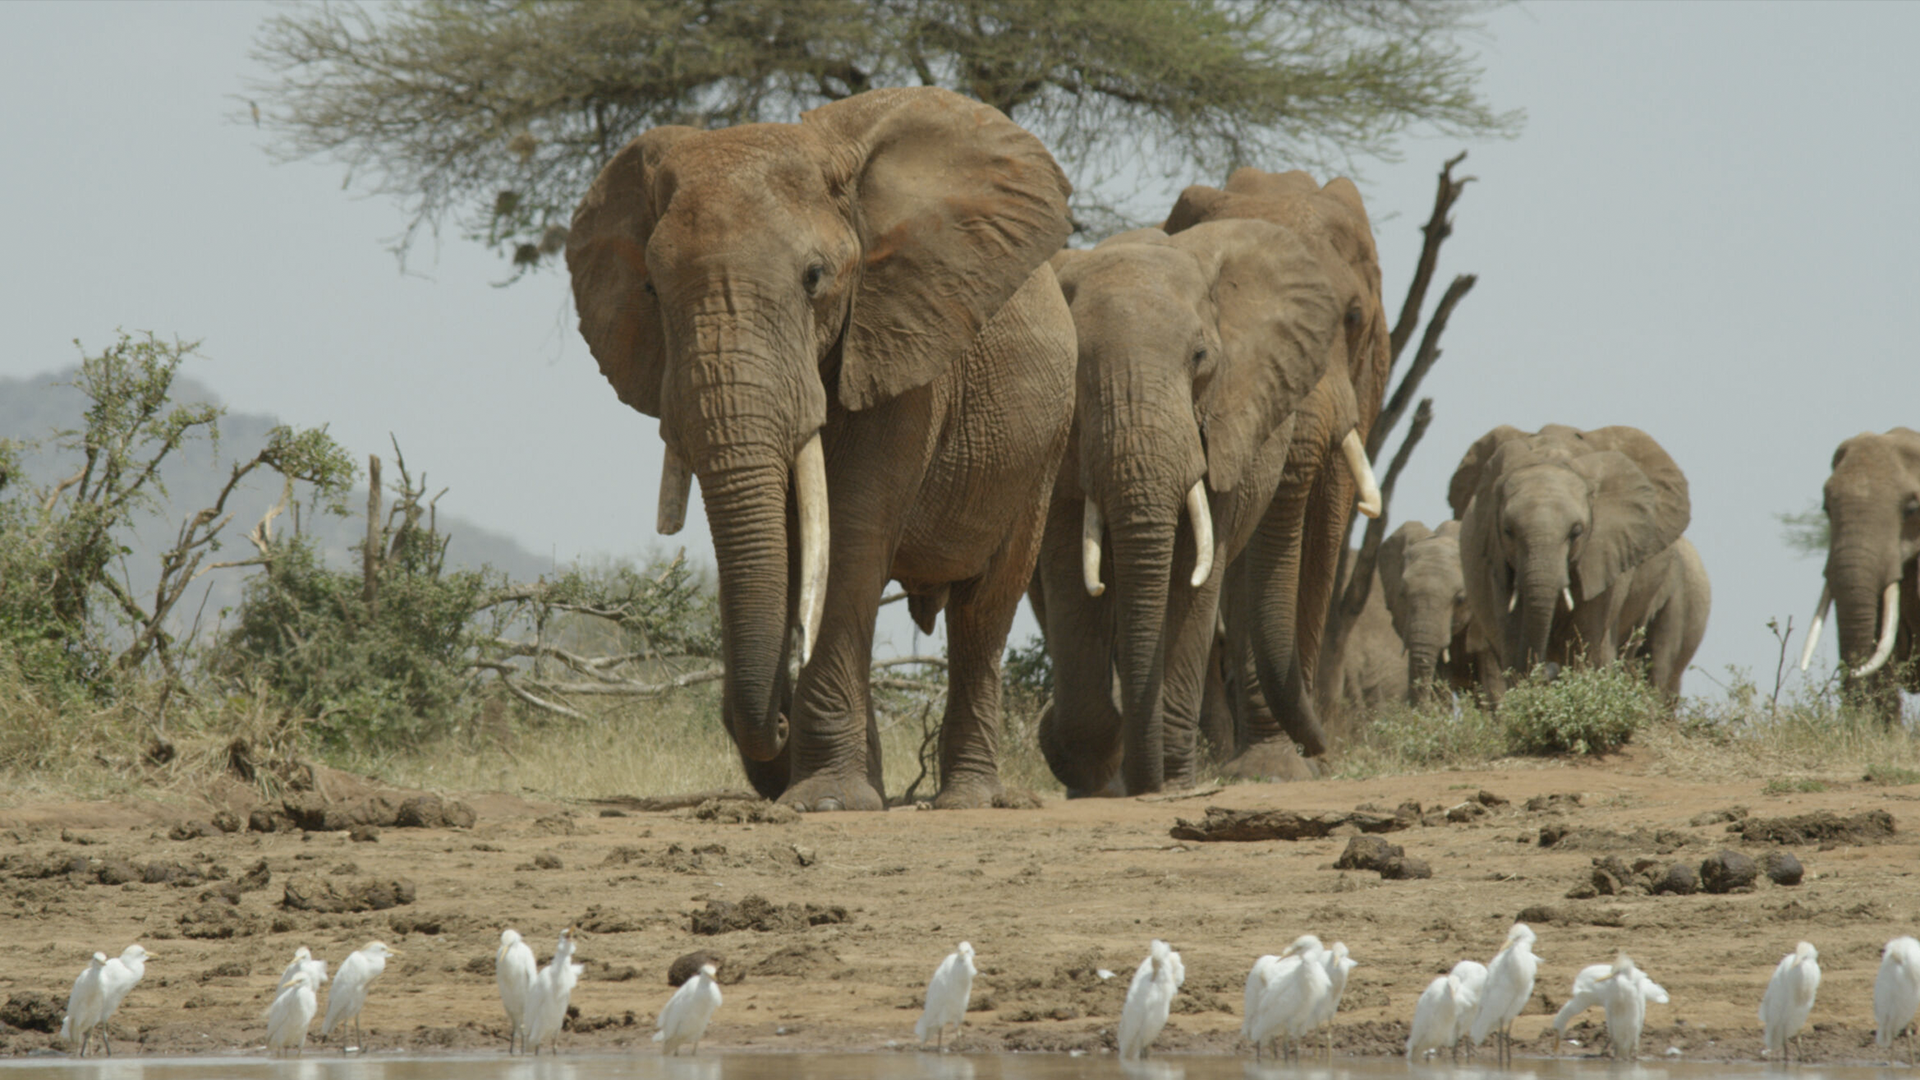 The Elephant and the Termite